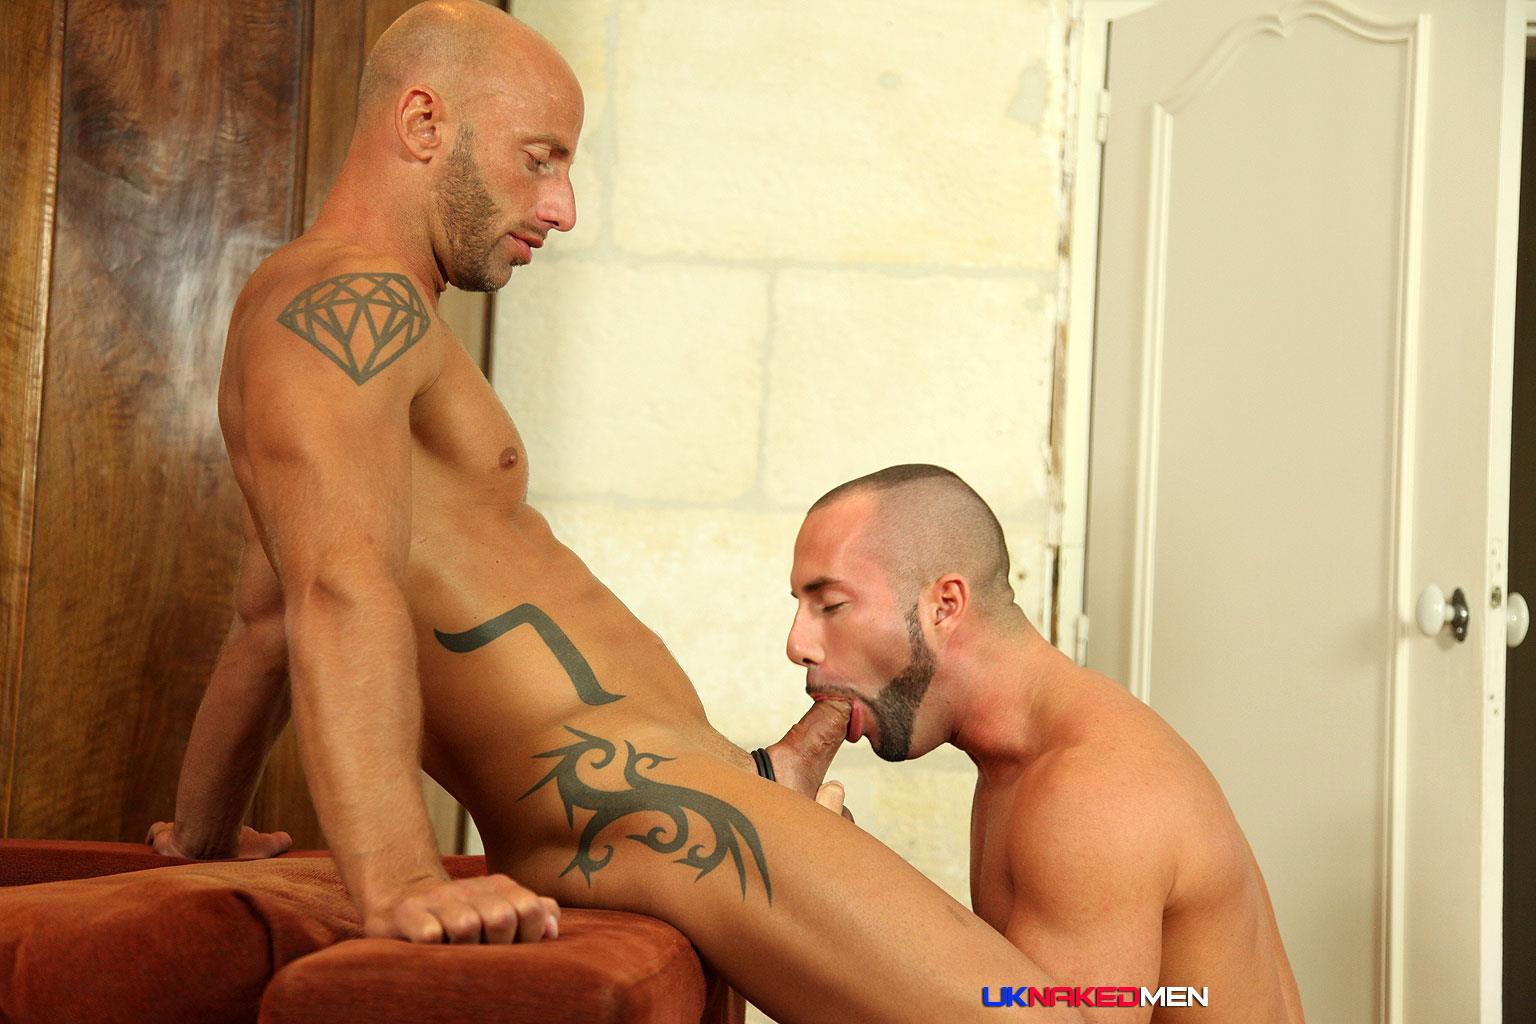 UK Naked Men Aymeric Deville and Craig Farrel Big Thick Uncut Cocks Fucking Amateur Gay Porn 12 Aymeric Deville And His Thick Uncut Cock Getting Fucked By A Stranger